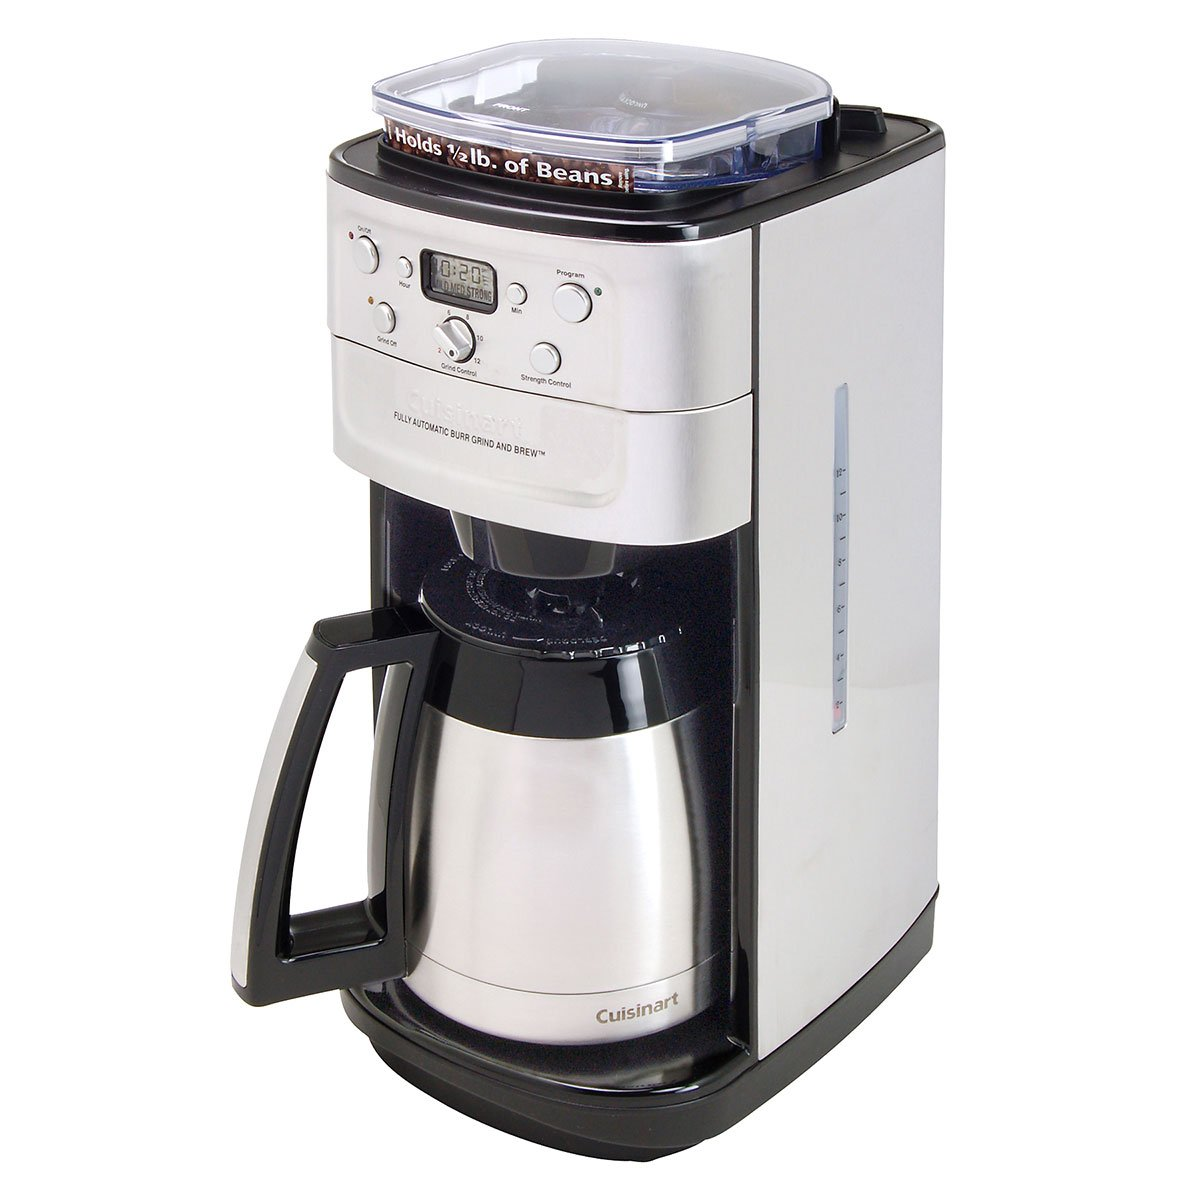 Grind and Brew Thermal - best coffee maker with grinder